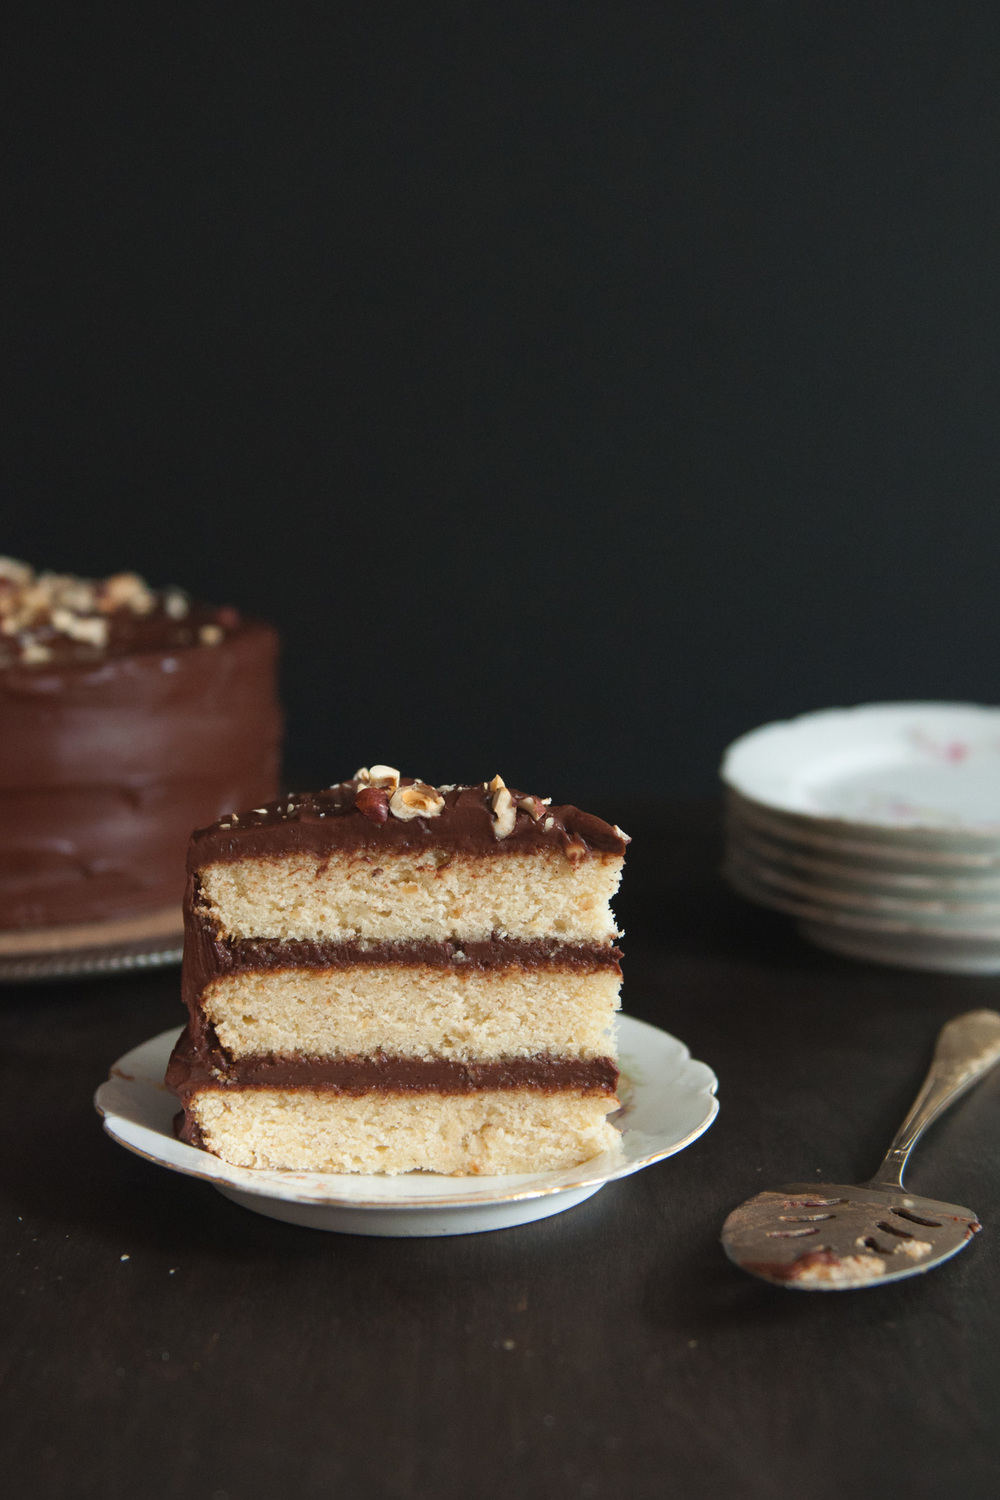 hazelnut_chocolate_cake8.jpg